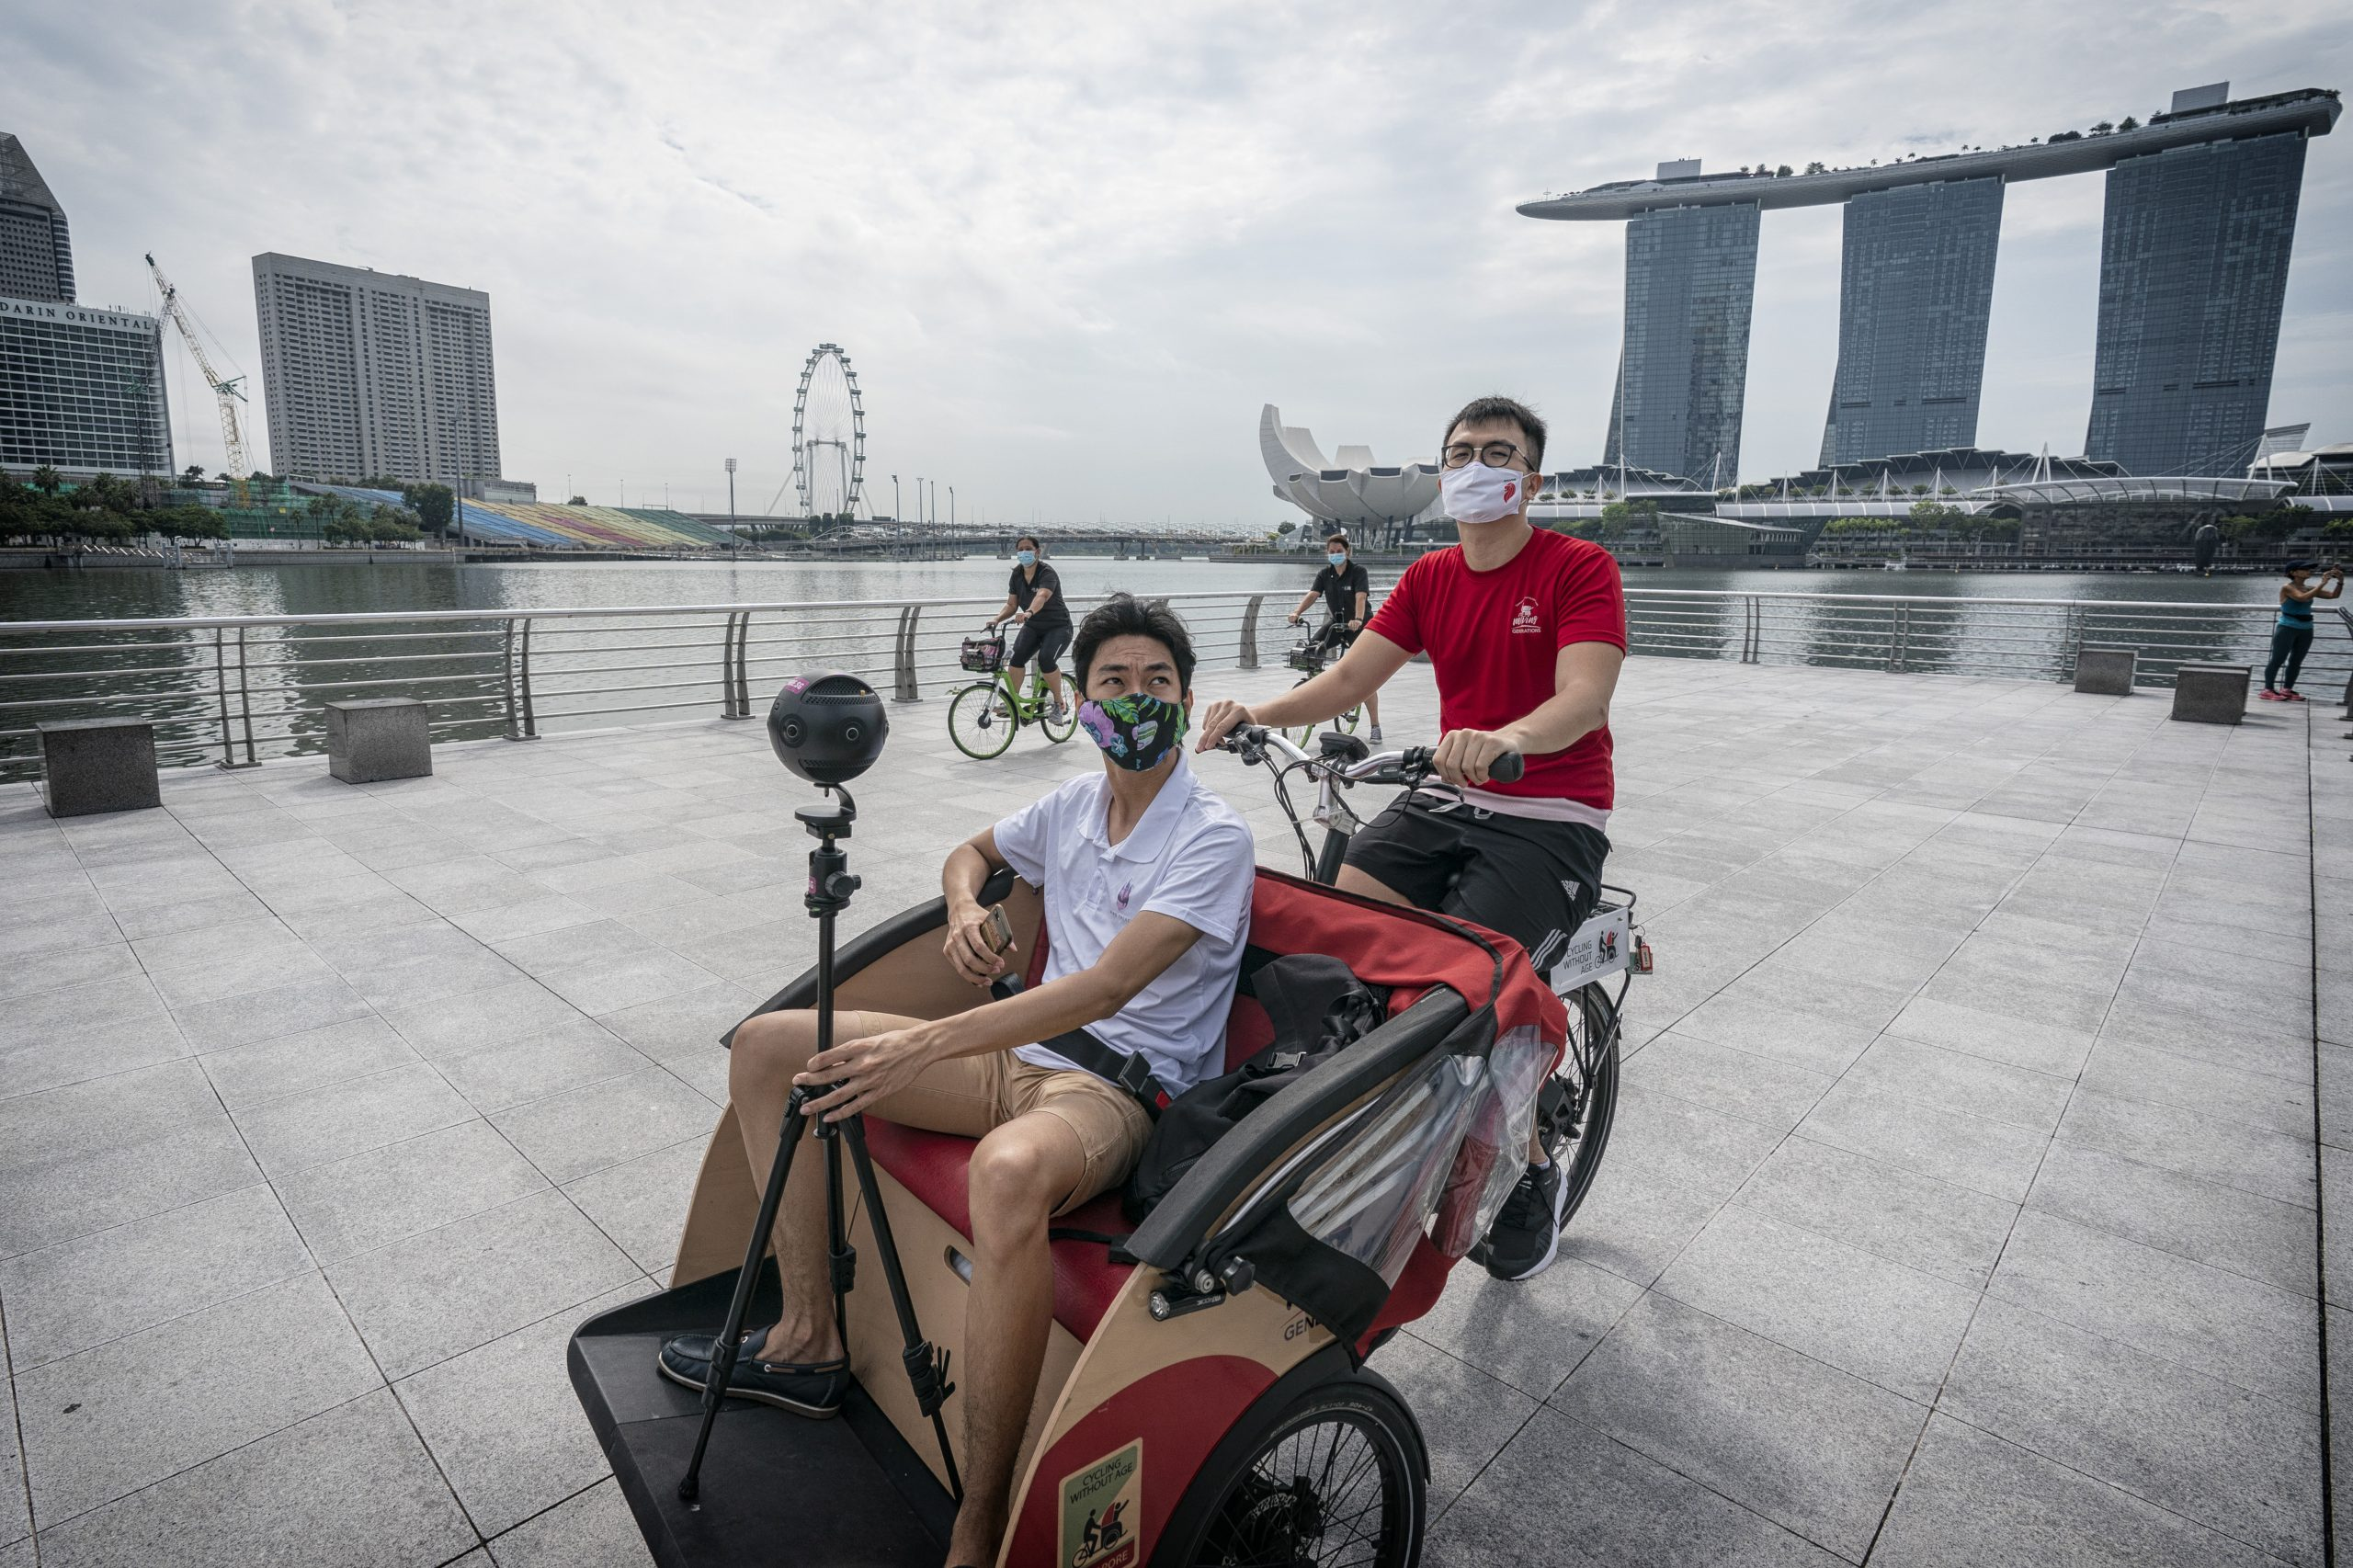 Volunteers from Cycling Without Age Singapore and Mind Palace journey through Singapore on trishaw while filming virtual reality content for residents in nursing homes